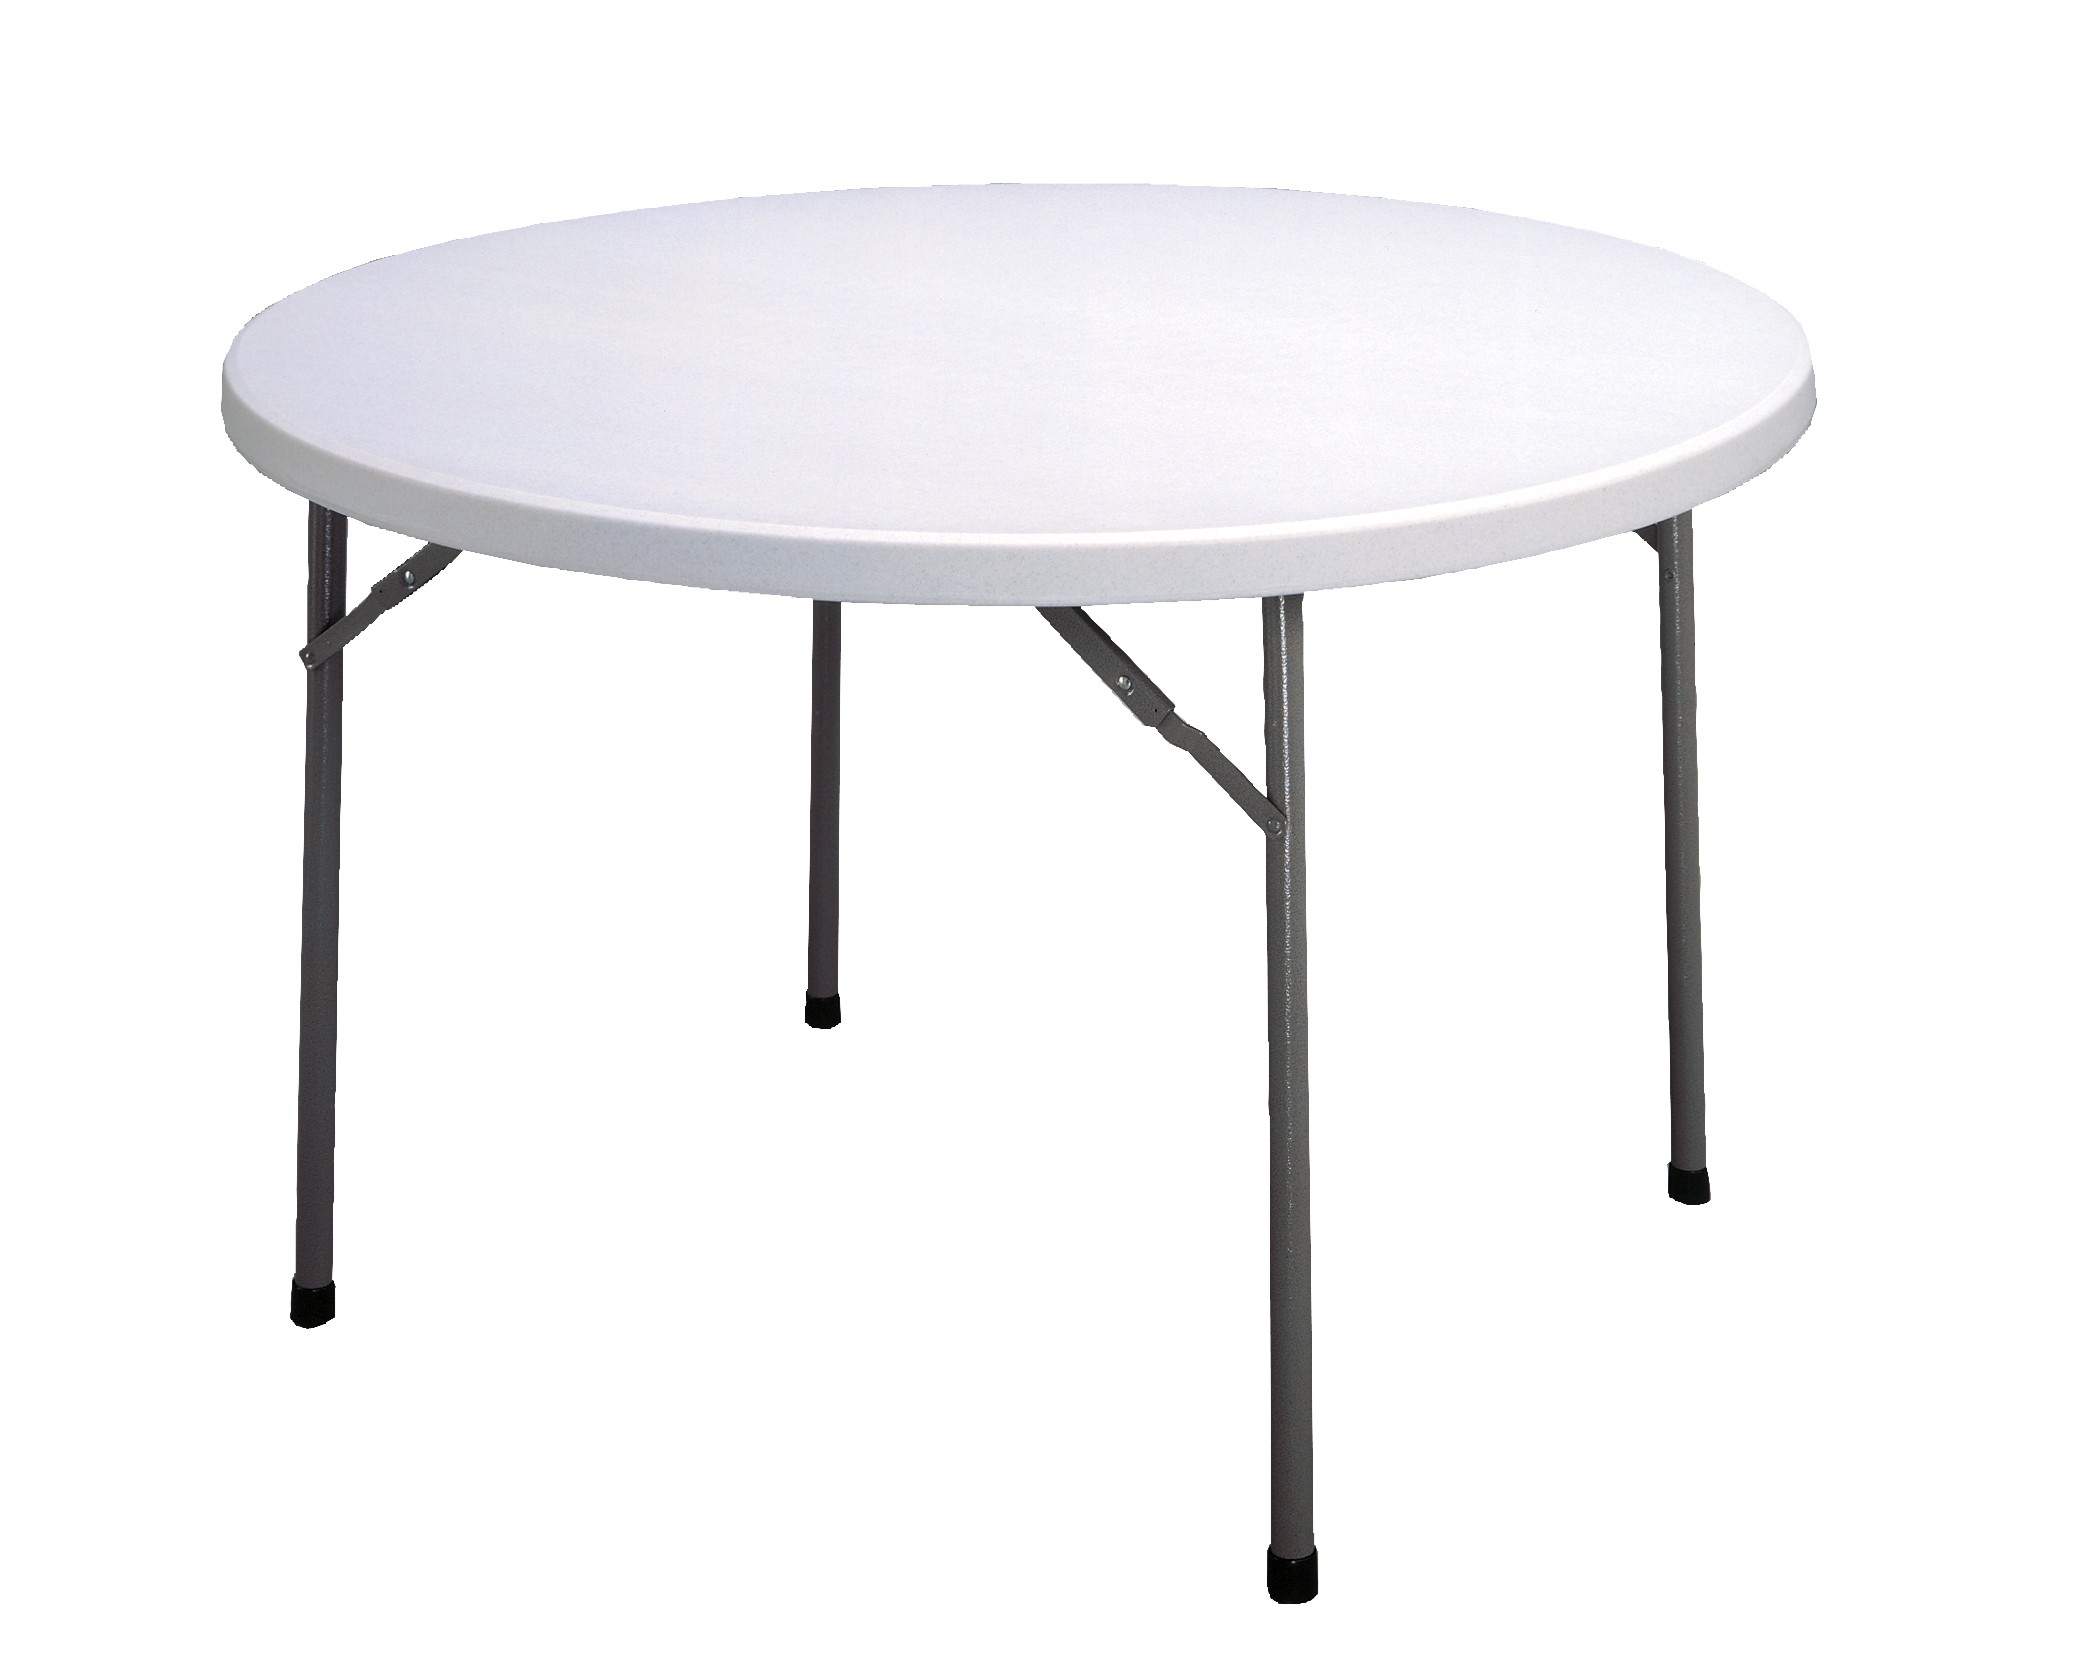 Costco Folding Tables | 48 Inch Round Folding Table Walmart | Costco Round Tables